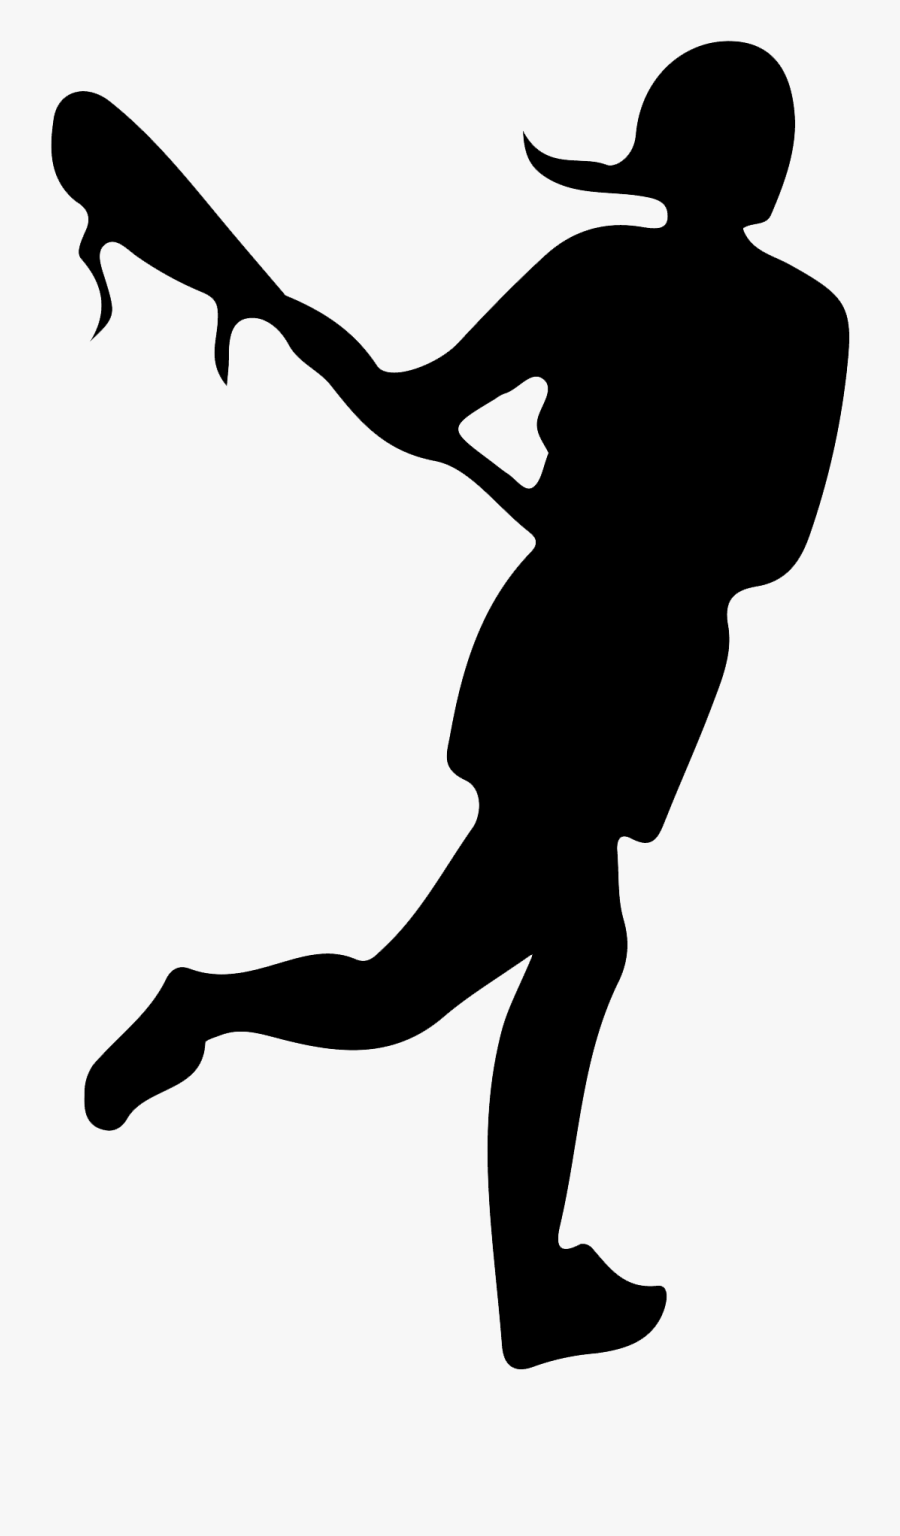 "Women""s Lacrosse Sport Lacrosse Sticks Ball - Lacrosse Girl Player Silhouette, Transparent Clipart"